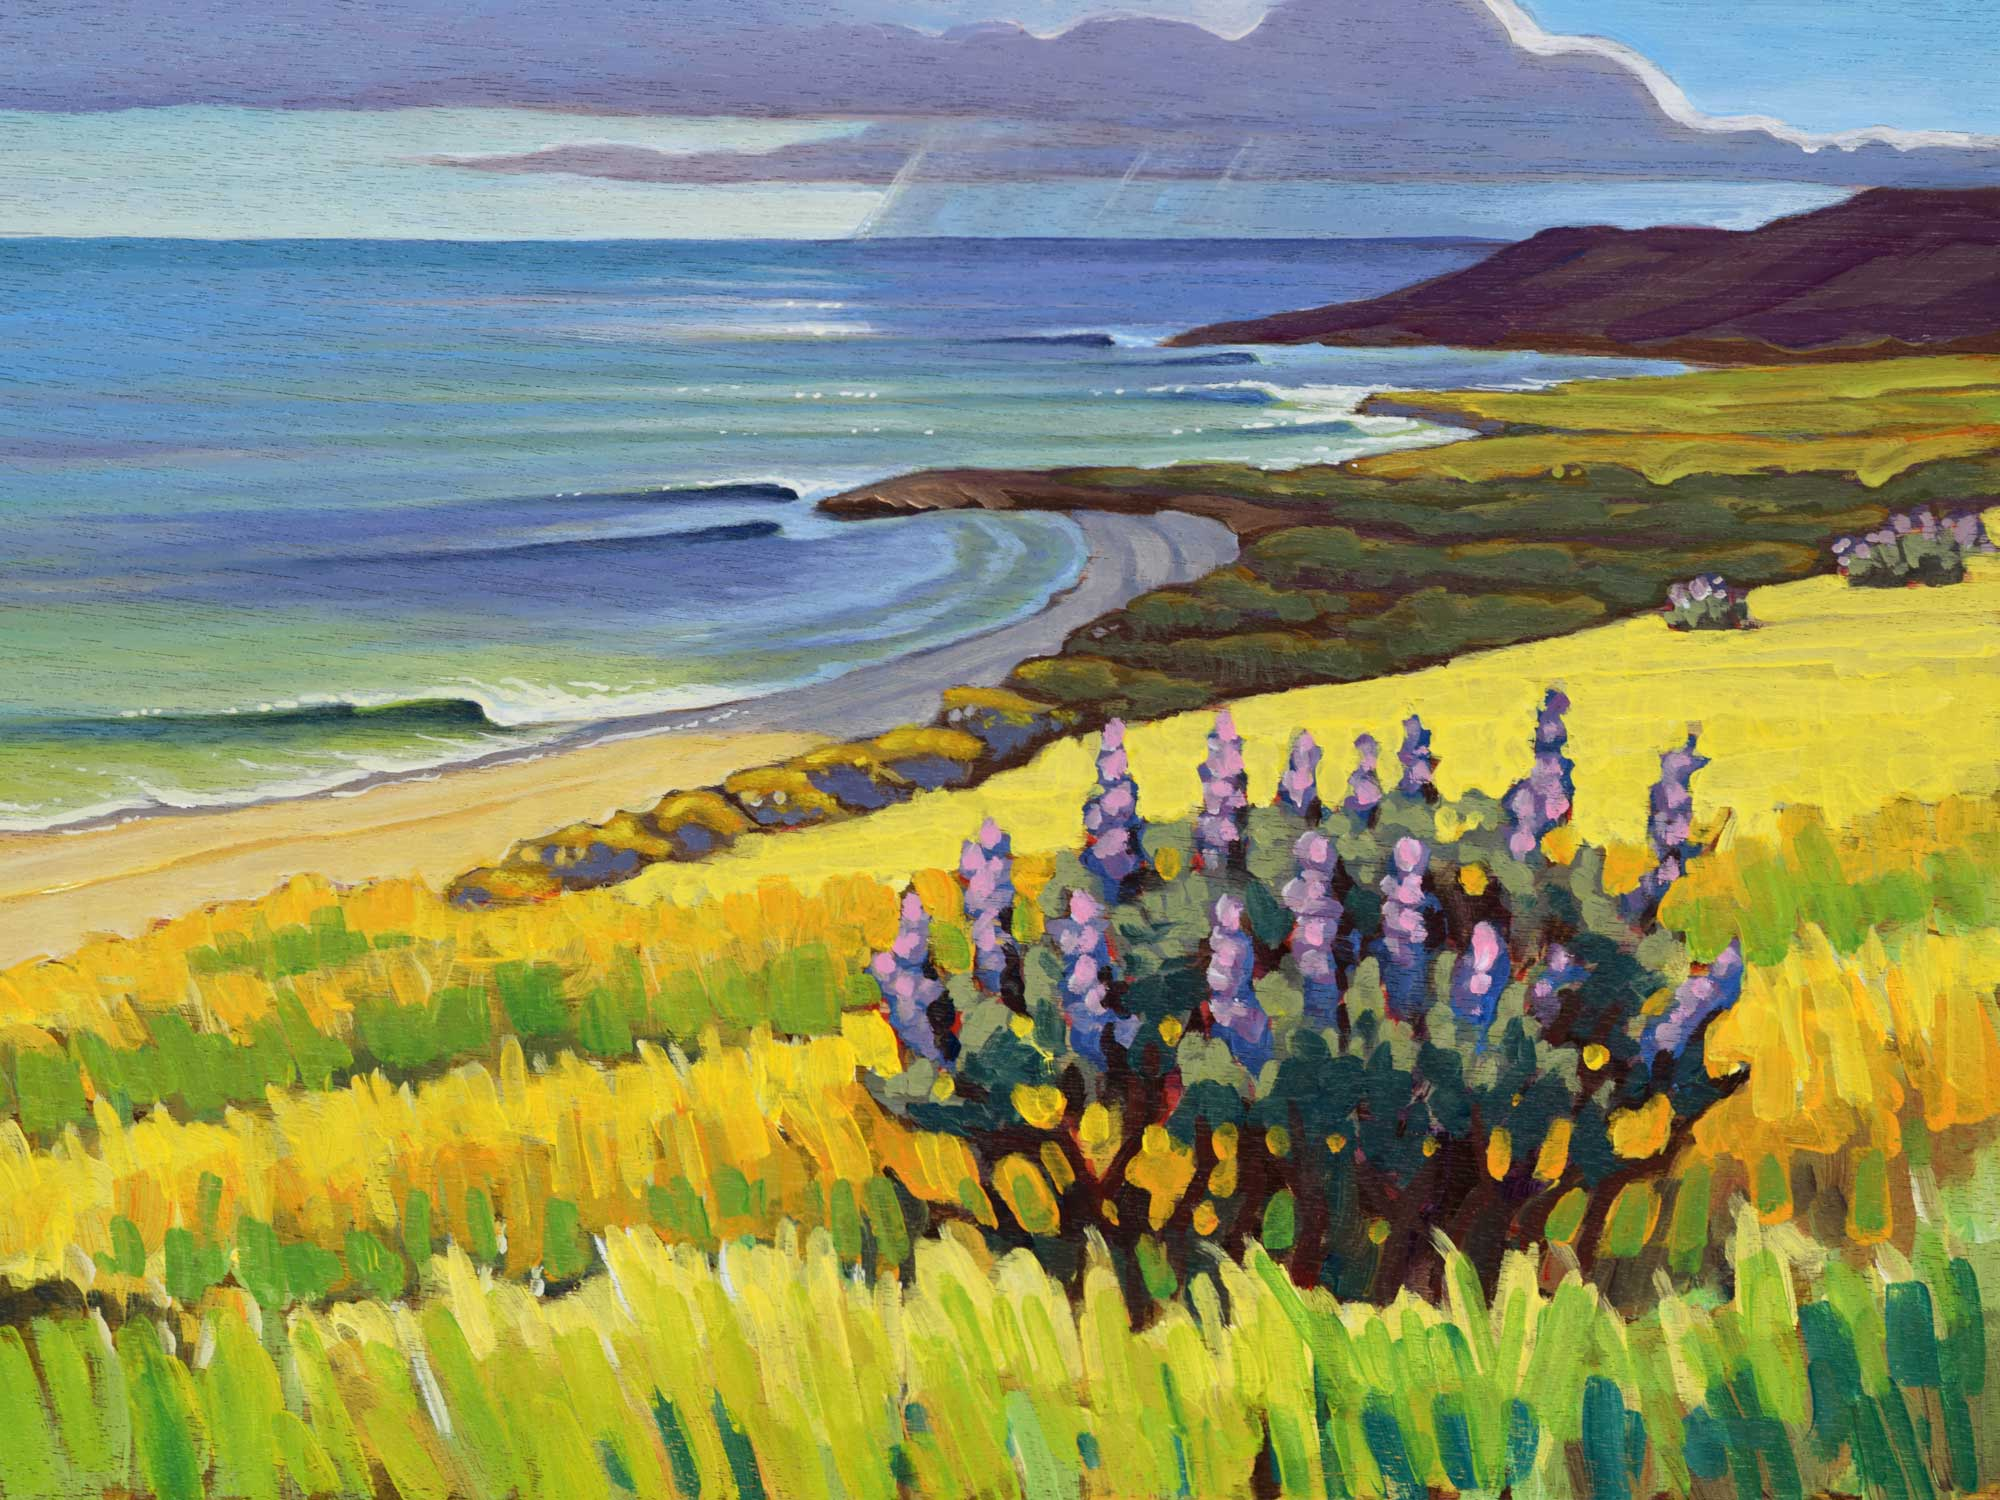 Plein air painting of East Point area of Santa Rosa island in the Channel Islands off the coast of Southern California